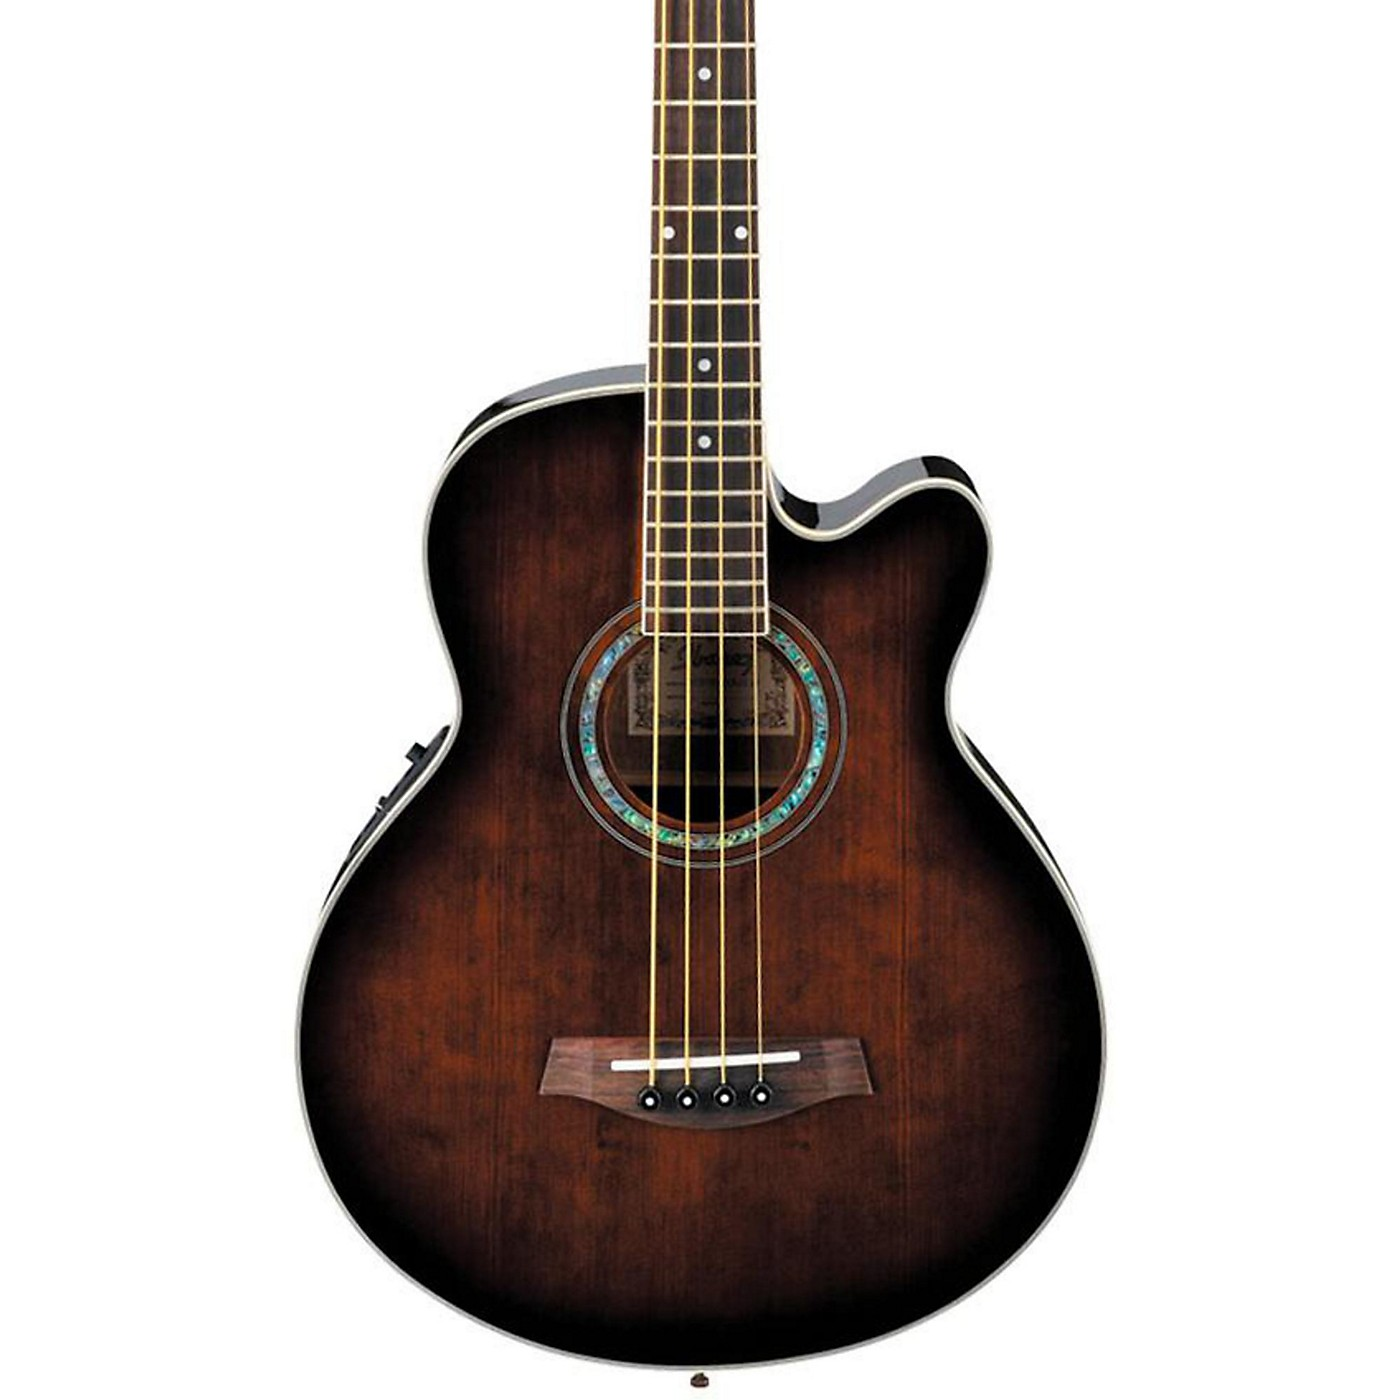 Ibanez AEB10E Acoustic-Electric Bass Guitar with Onboard Tuner thumbnail